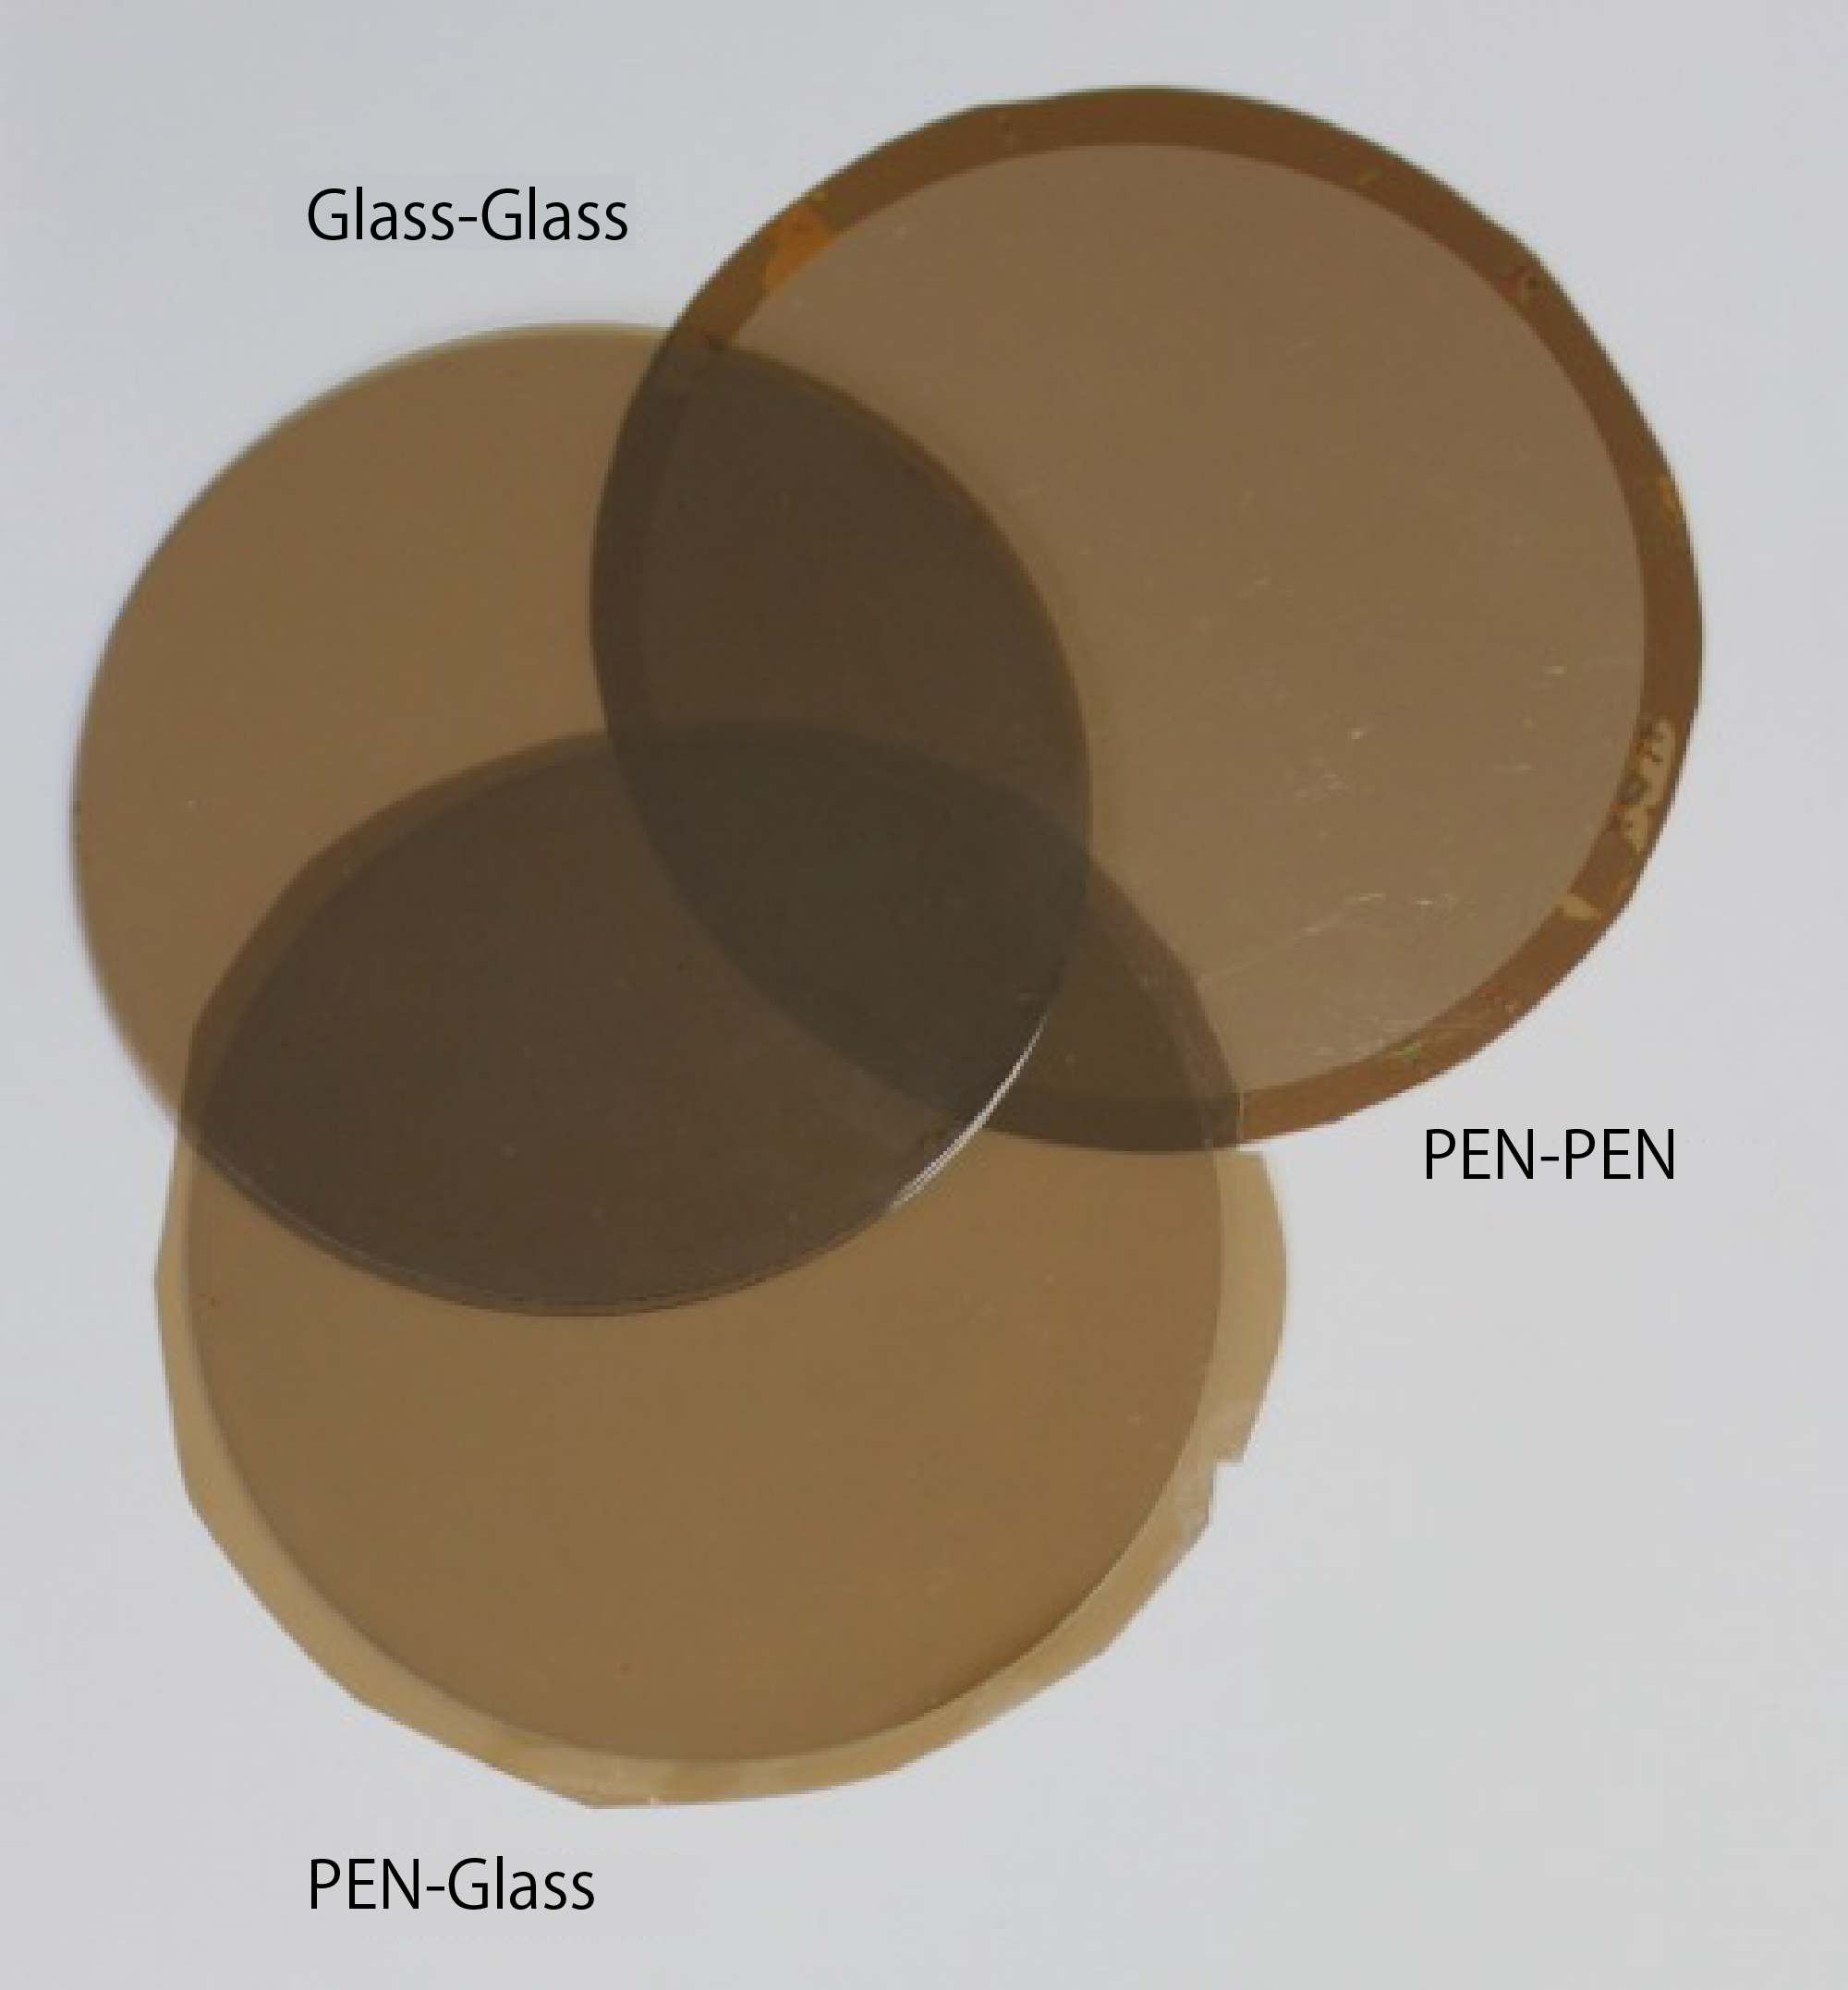 Room Temperature Bonding of Film-to-Film and Film-to-Glass